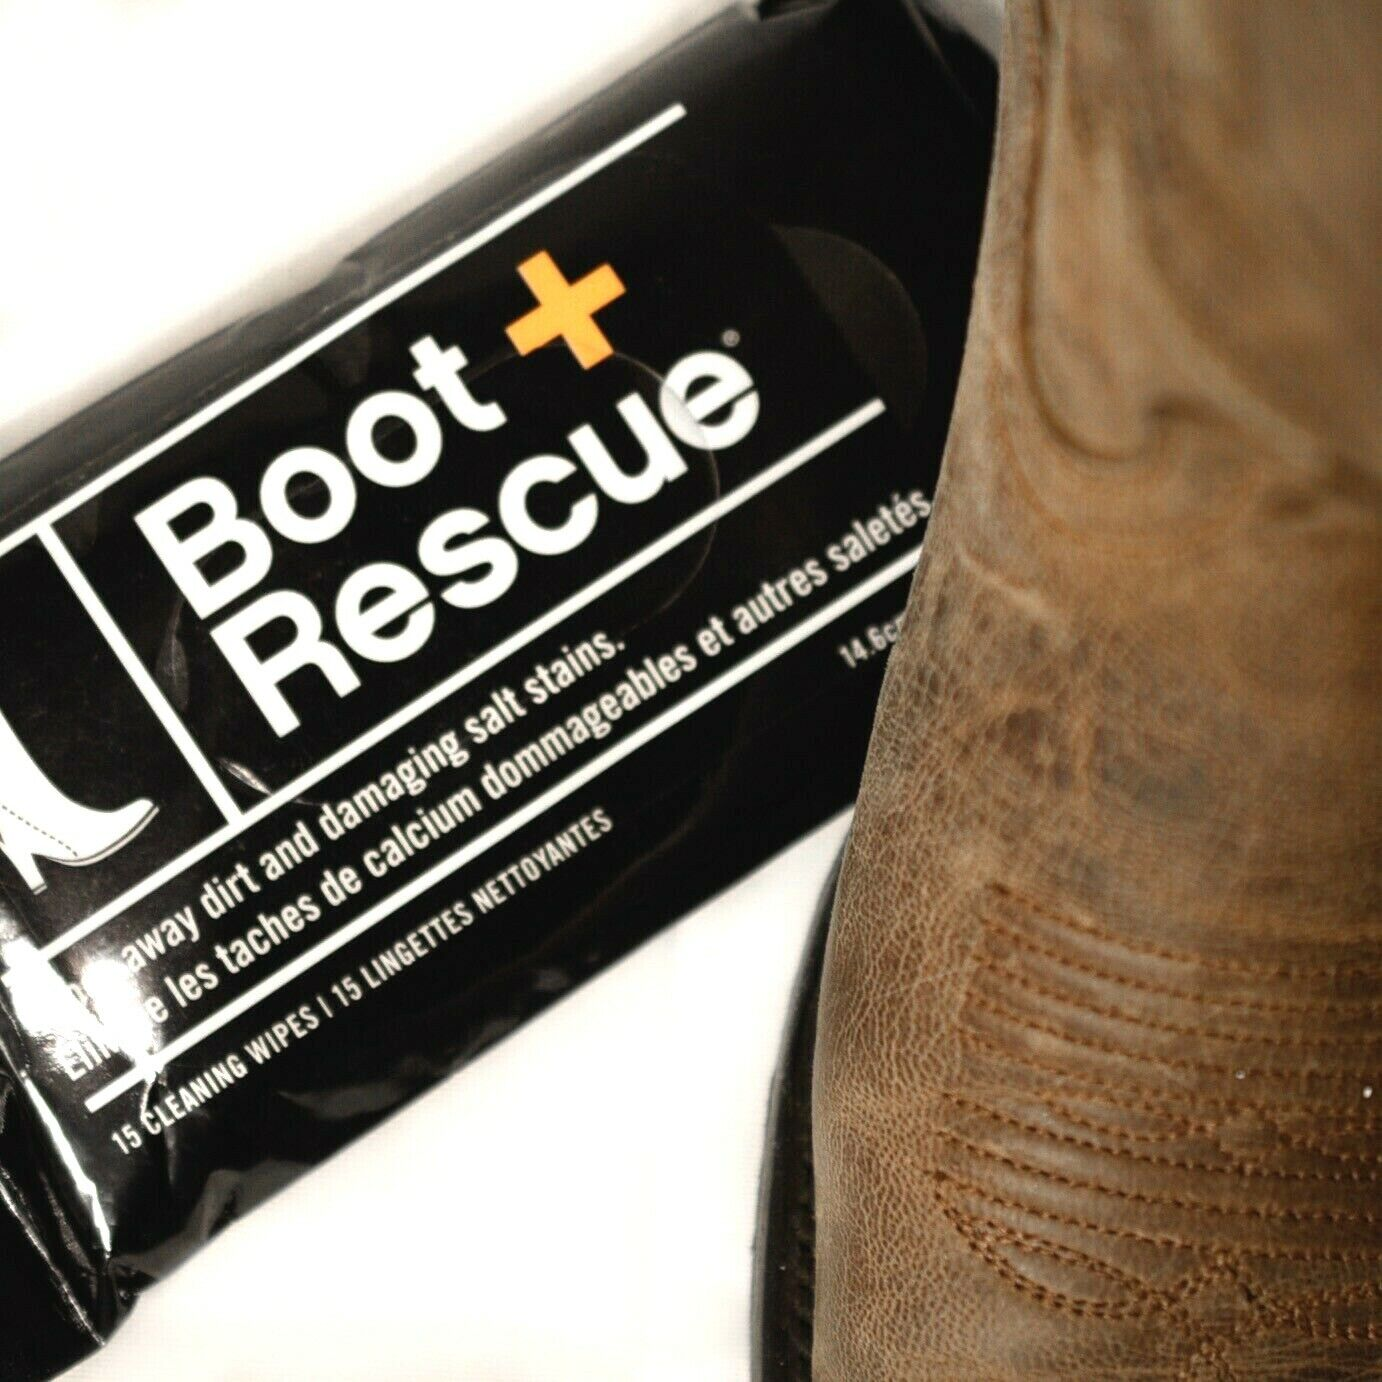 Boot Rescue Wipes fifteen all-natural, disposable Use on any shoes 15 Wipes NIB Clothing & Shoe Care